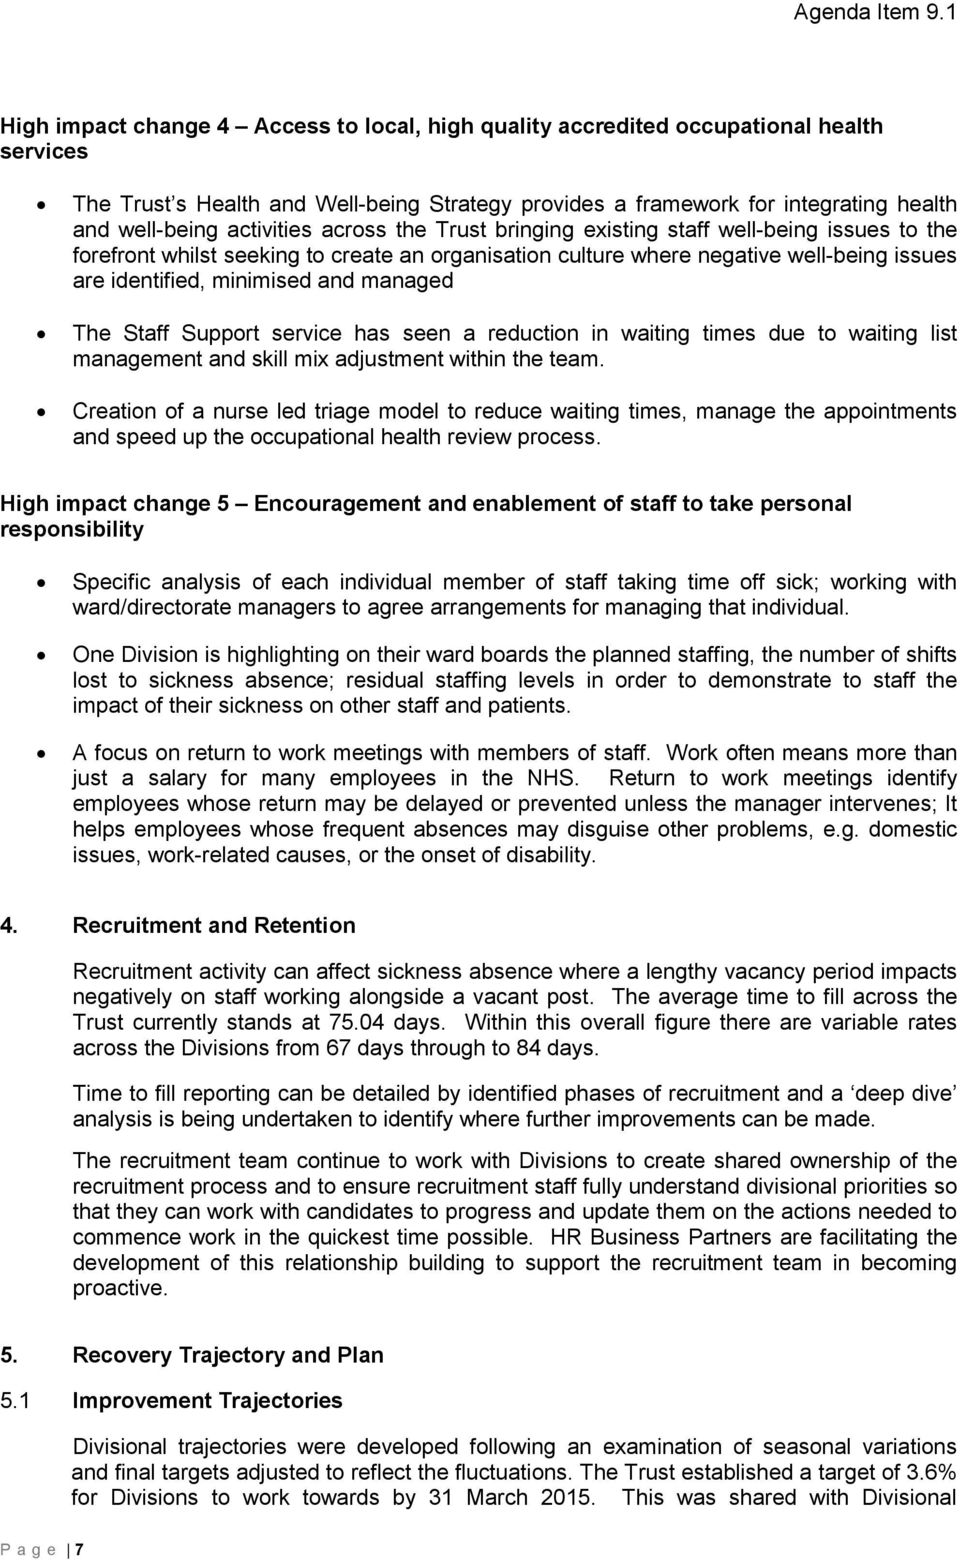 managed The Staff Support service has seen a reduction in waiting times due to waiting list management and skill mix adjustment within the team.